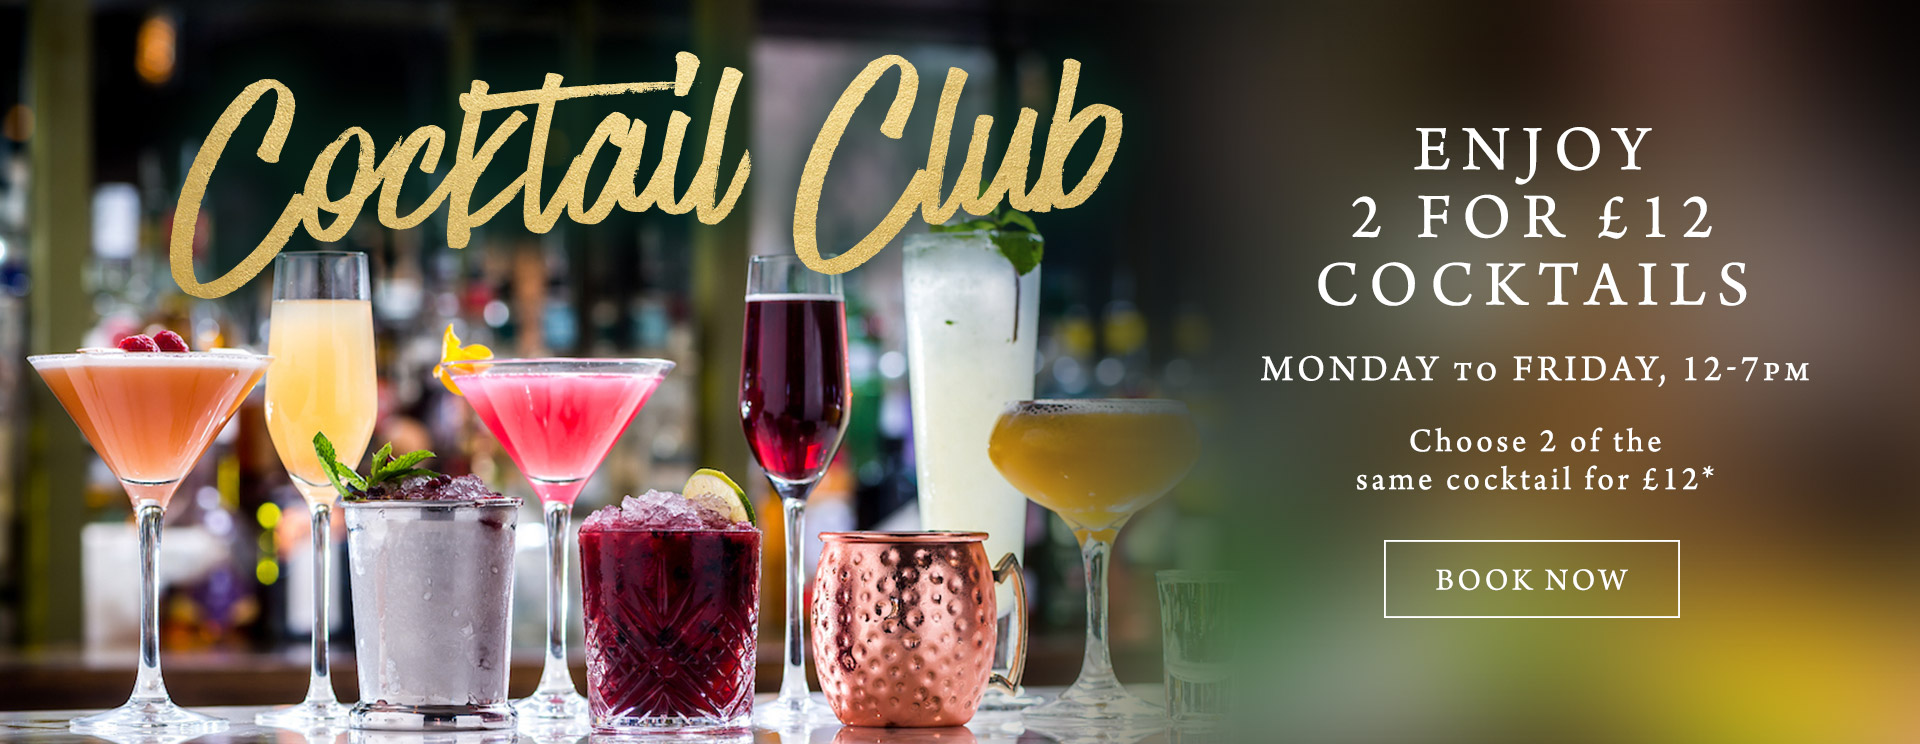 2 for £12 cocktails at The Lyttelton Arms